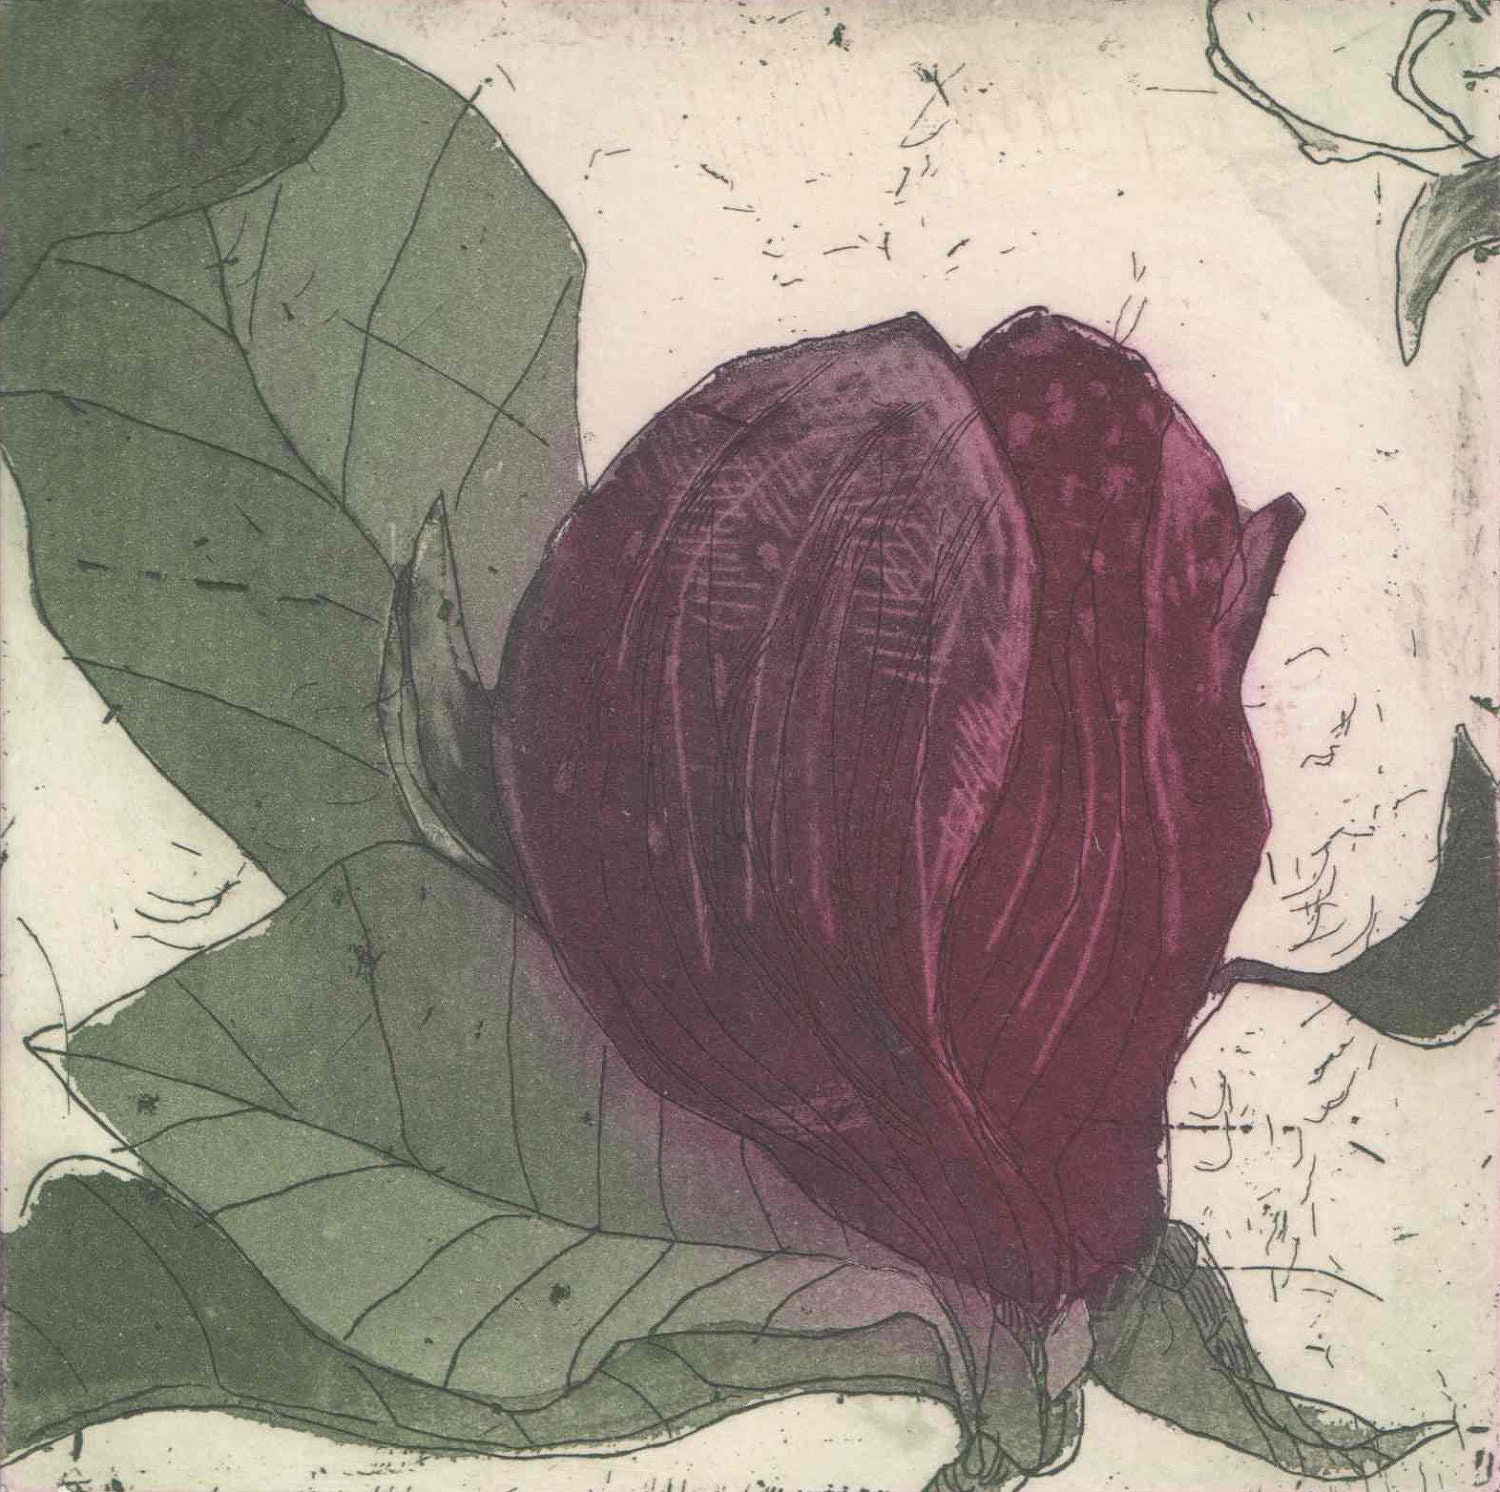 Purple Magnolia III, original hand pulled etching and aquatint by Marta Wakula-Mac